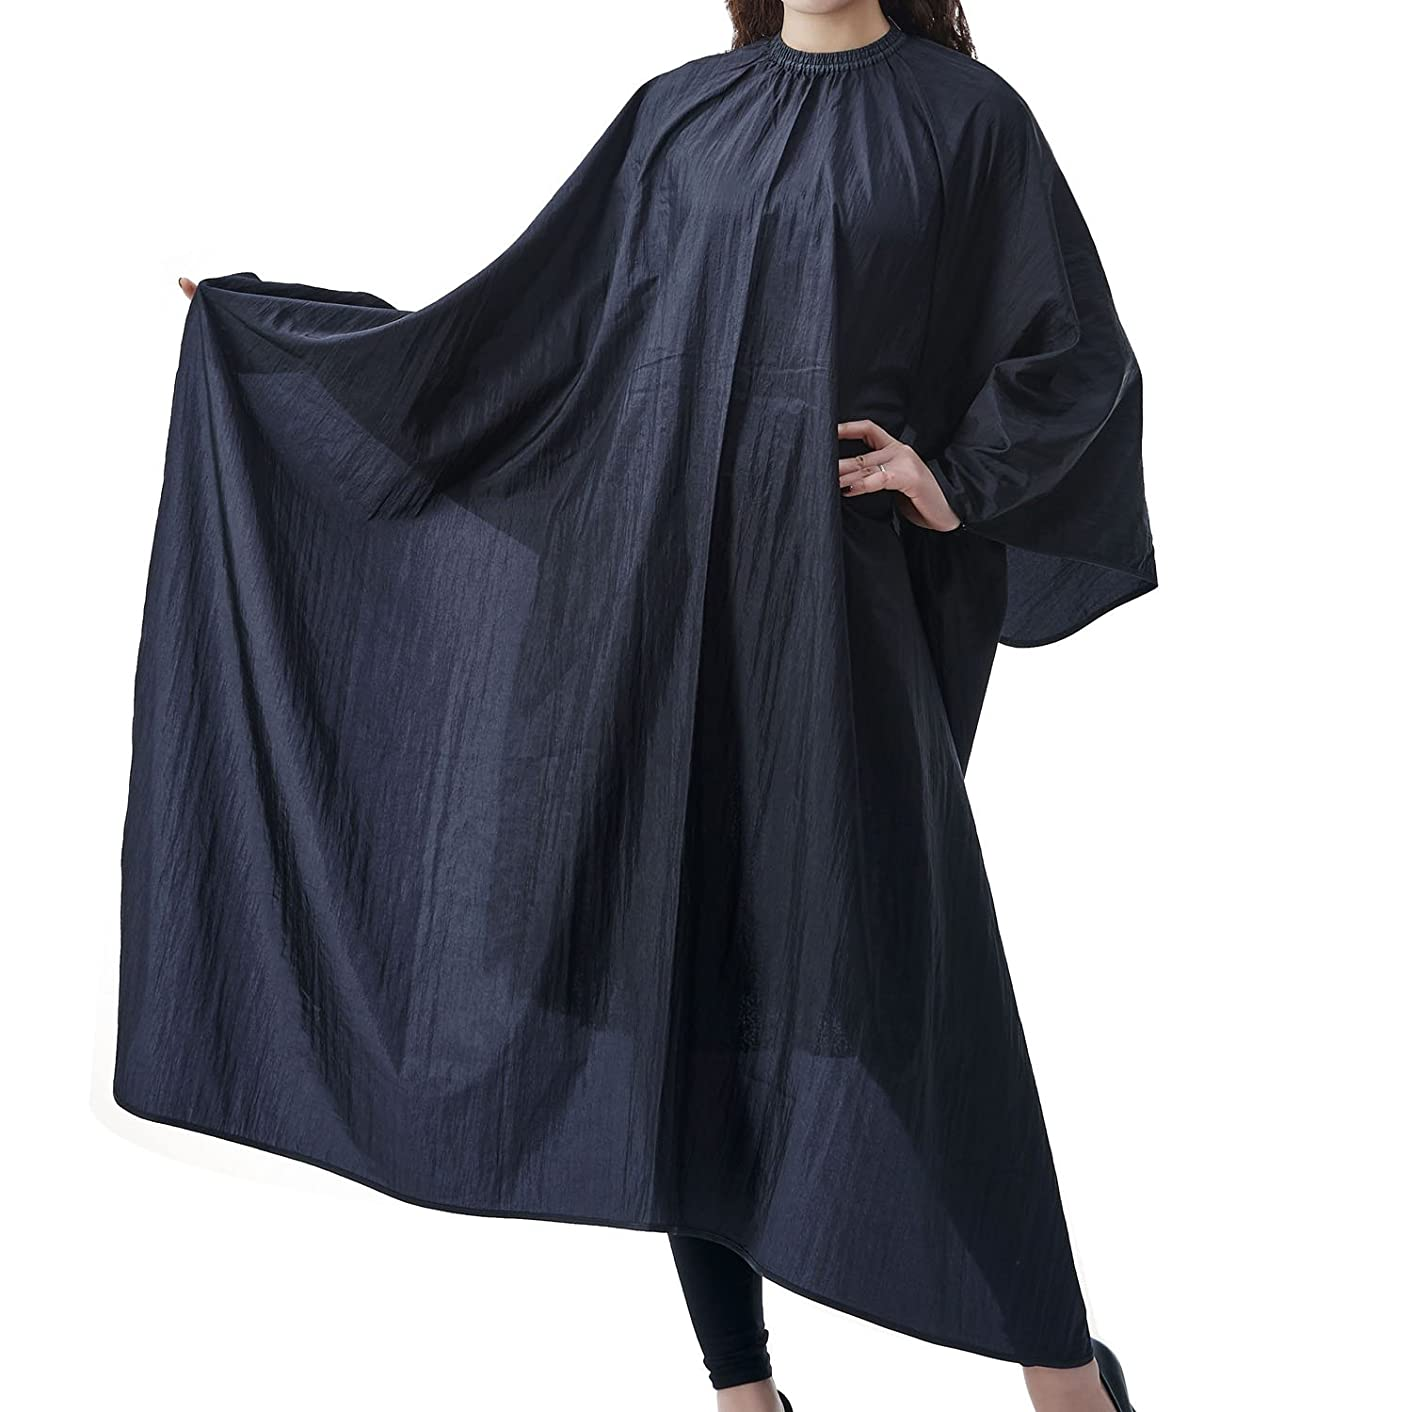 Salon Professional Hair Styling Cape, Colorfulife? Adult Hair Cutting Coloring Styling Waterproof Cape Meryl Spin Knit Hairdresser Wai Cloth Barber Gown Home Camps & Hairdressing Wrap Pure Color Contracted Pattern Capes K004 (Black)